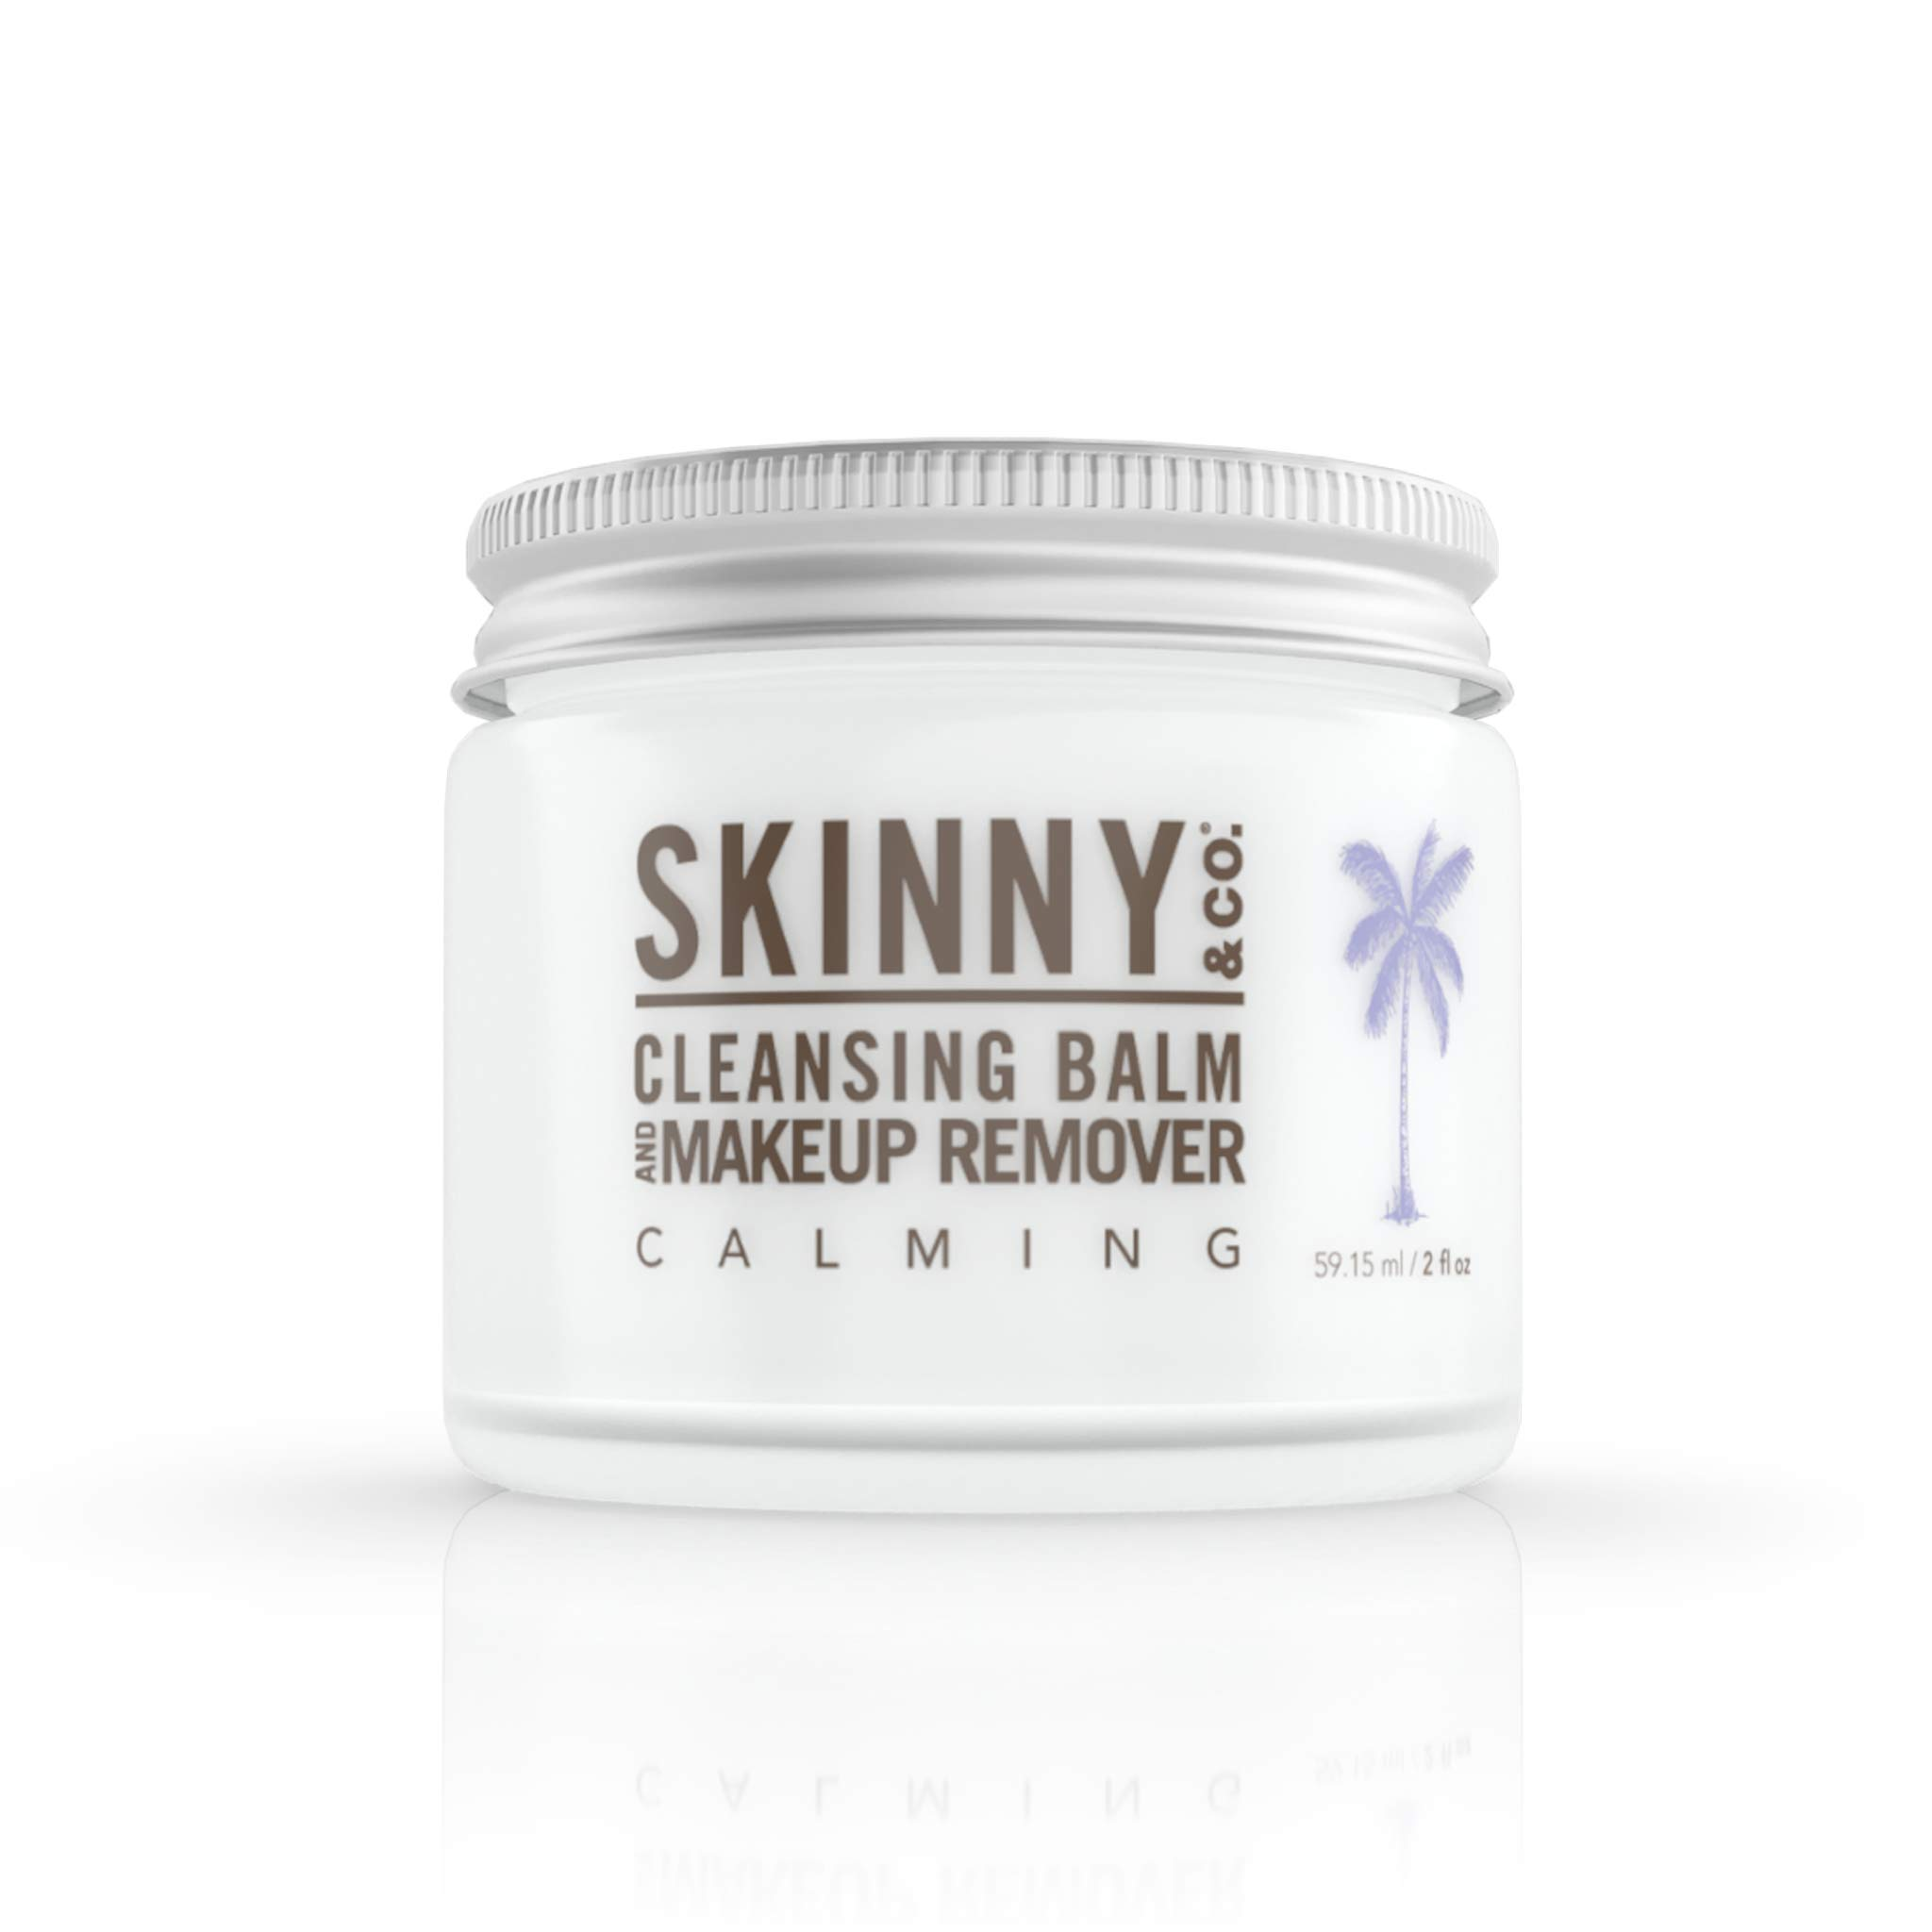 SKINNY & CO. Calming Cleansing Balm & Makeup Remover- 3-in-1 Formula, Makeup Remover, Cleanser & Moisturizer | Brightens & Soothes Skin, Reduces Redness, 100% Raw Coconut Oil, Paraben Free, 2oz.